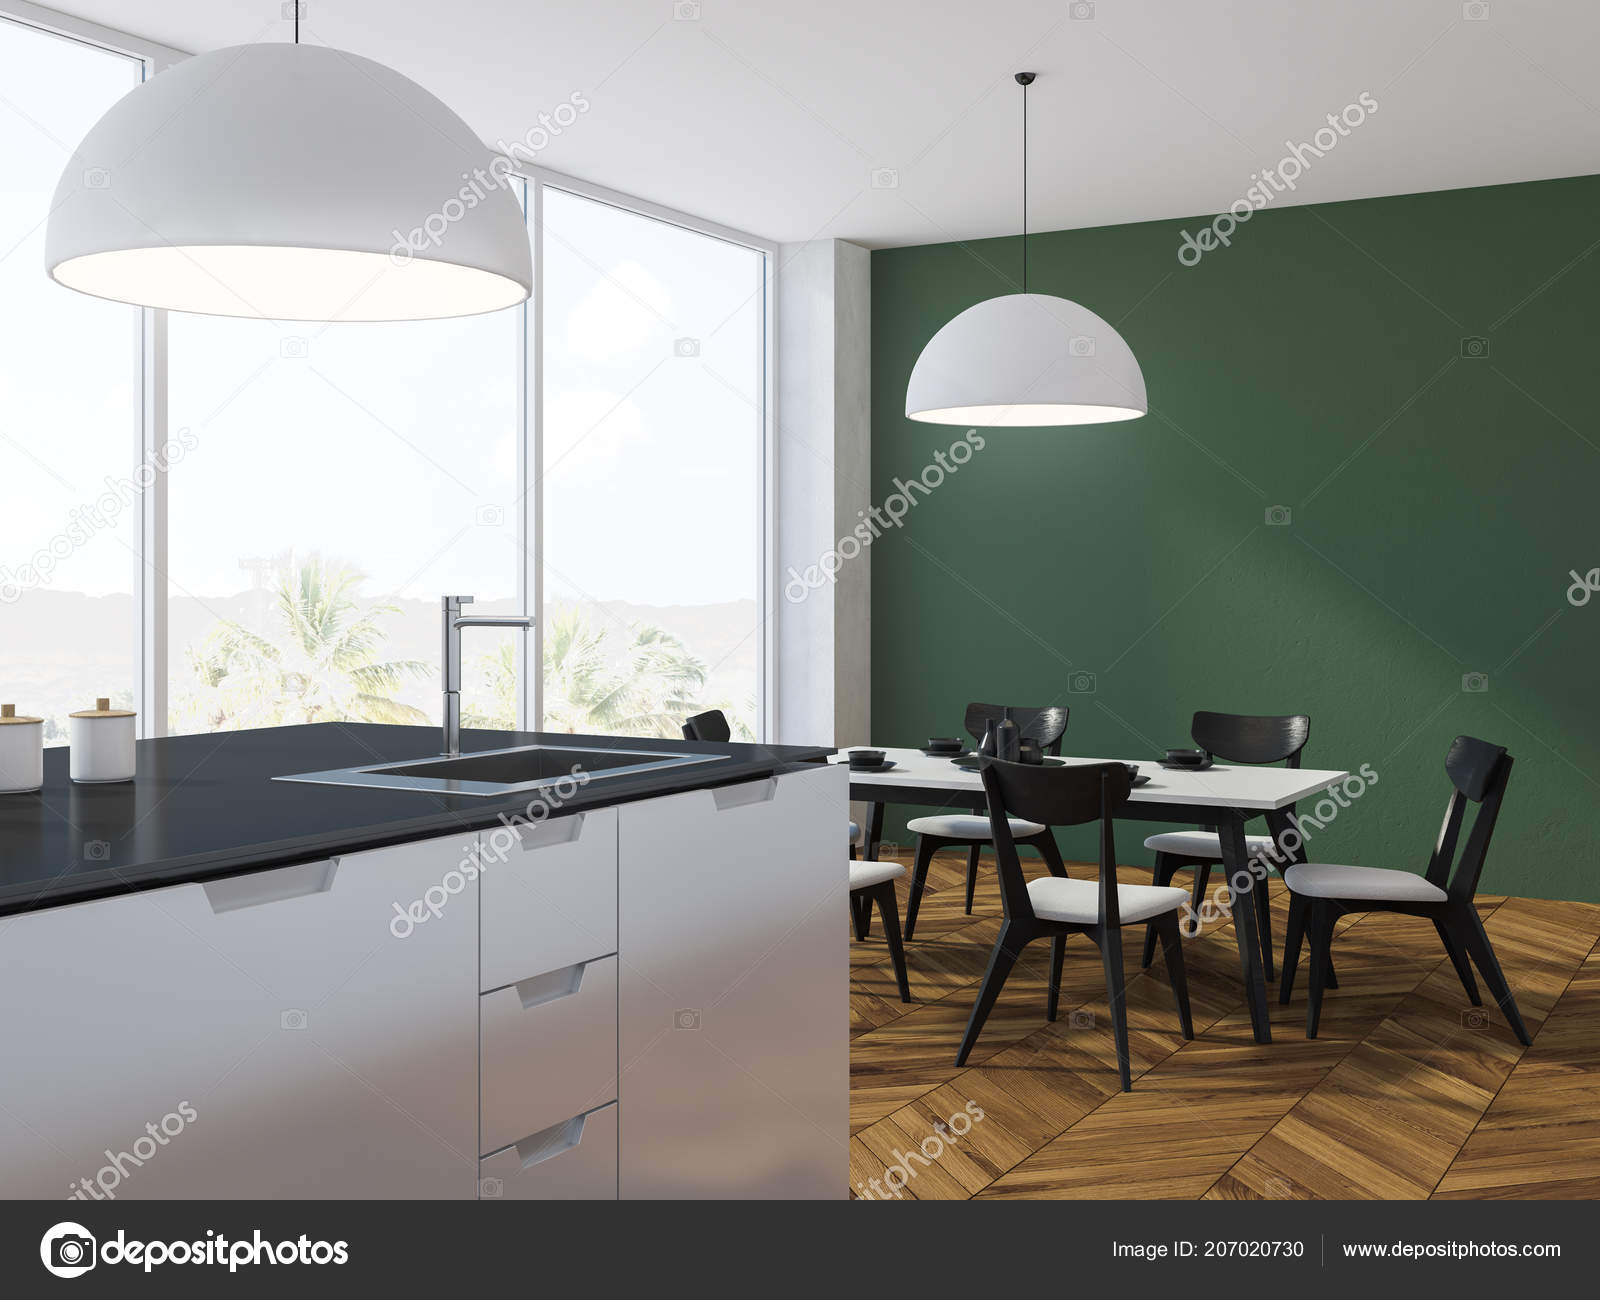 Panoramic Green Kitchen Wooden Floor Table Chairs White Black Counters Stock Photo Image By C Denisismagilov 207020730